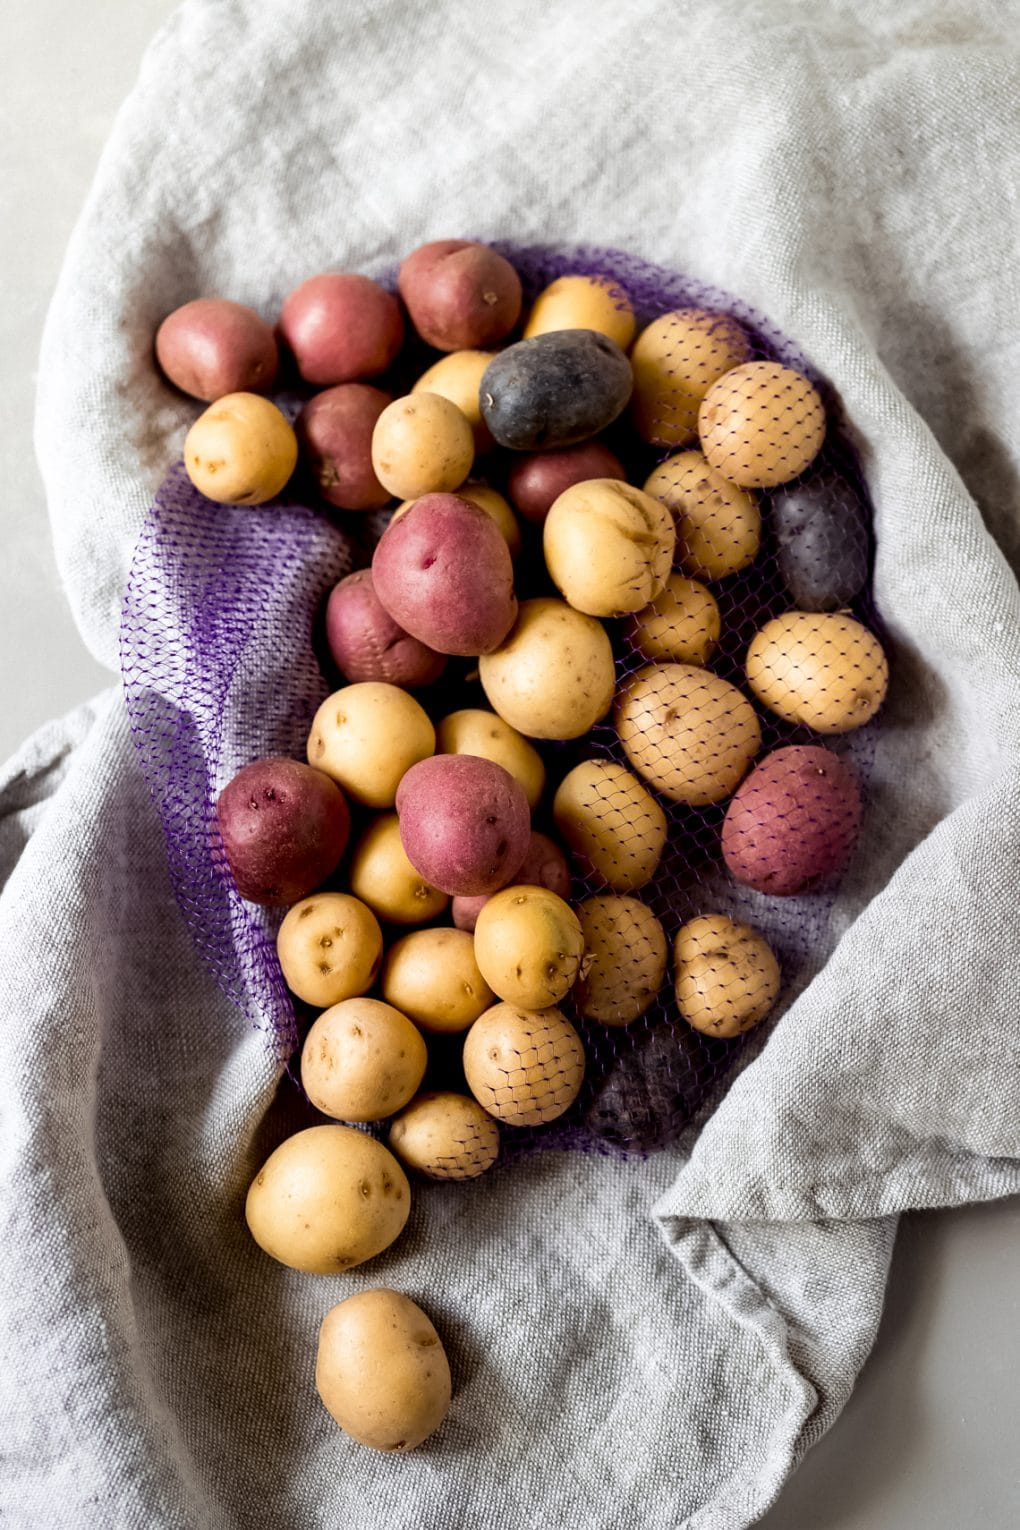 uncooked baby potatoes on a linen towel